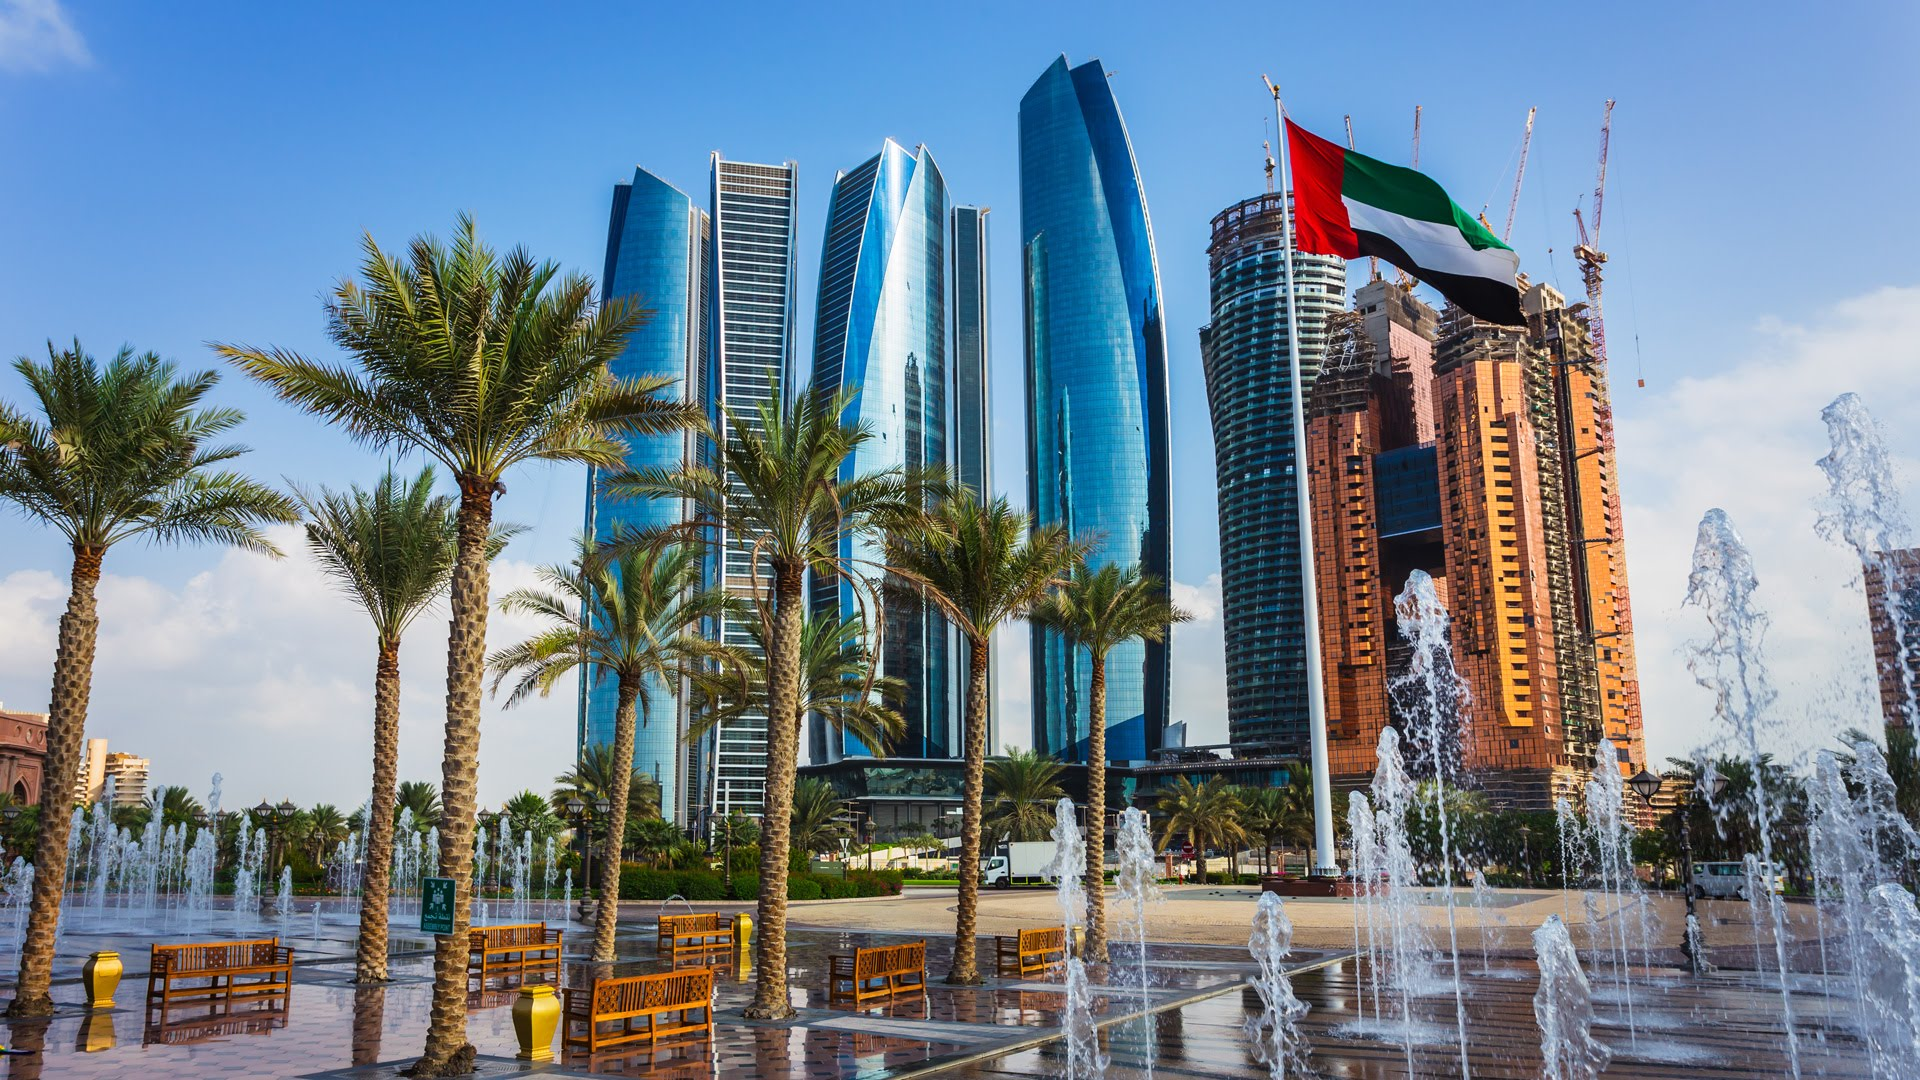 UAE dubbed as the happiest nation in Gulf region